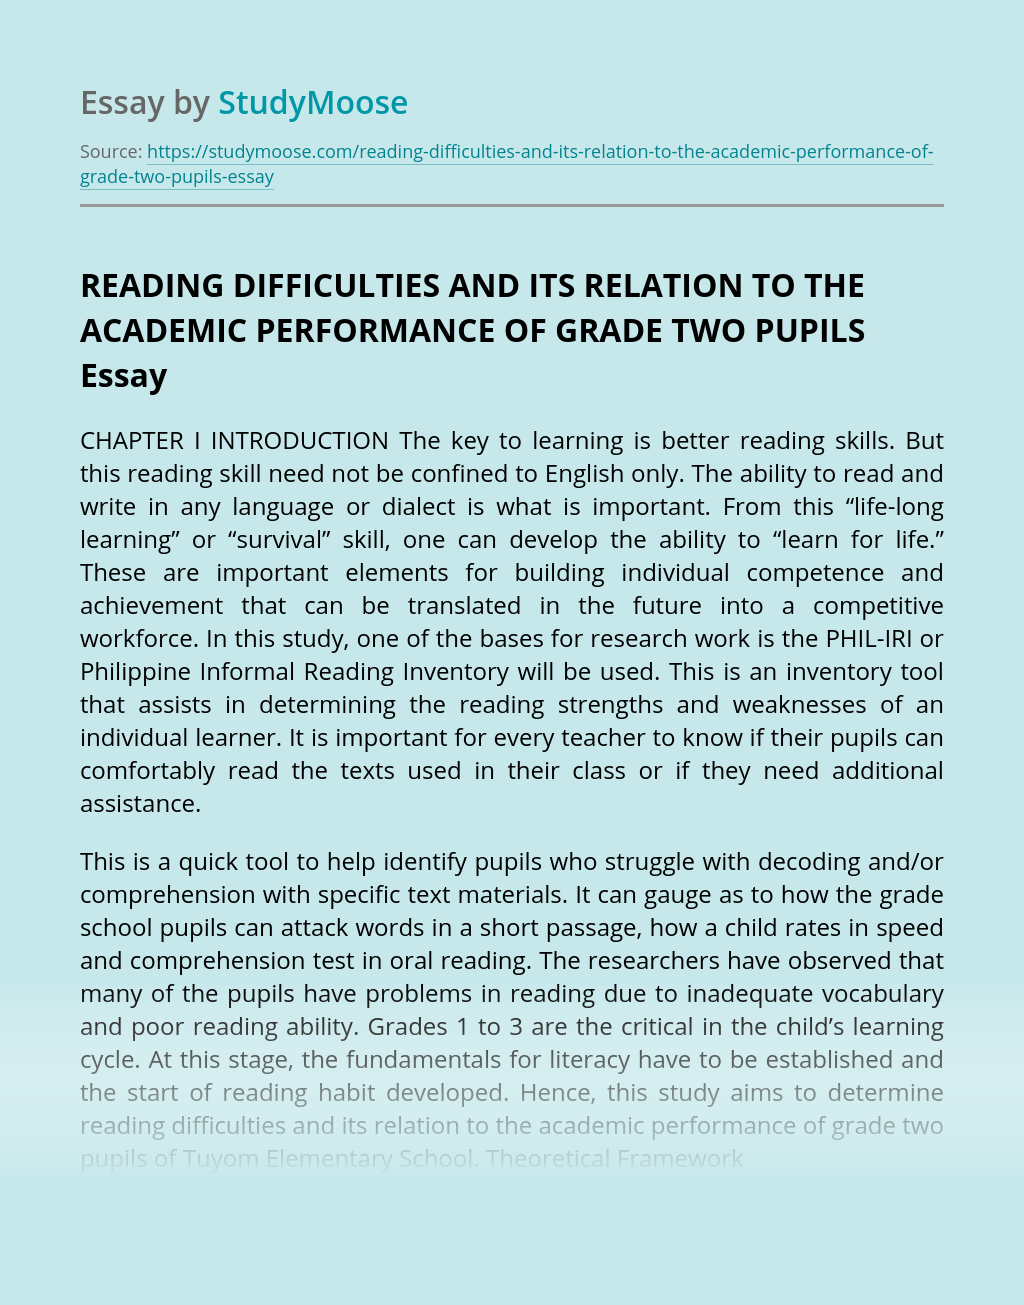 READING DIFFICULTIES AND ITS RELATION TO THE ACADEMIC PERFORMANCE OF GRADE TWO PUPILS